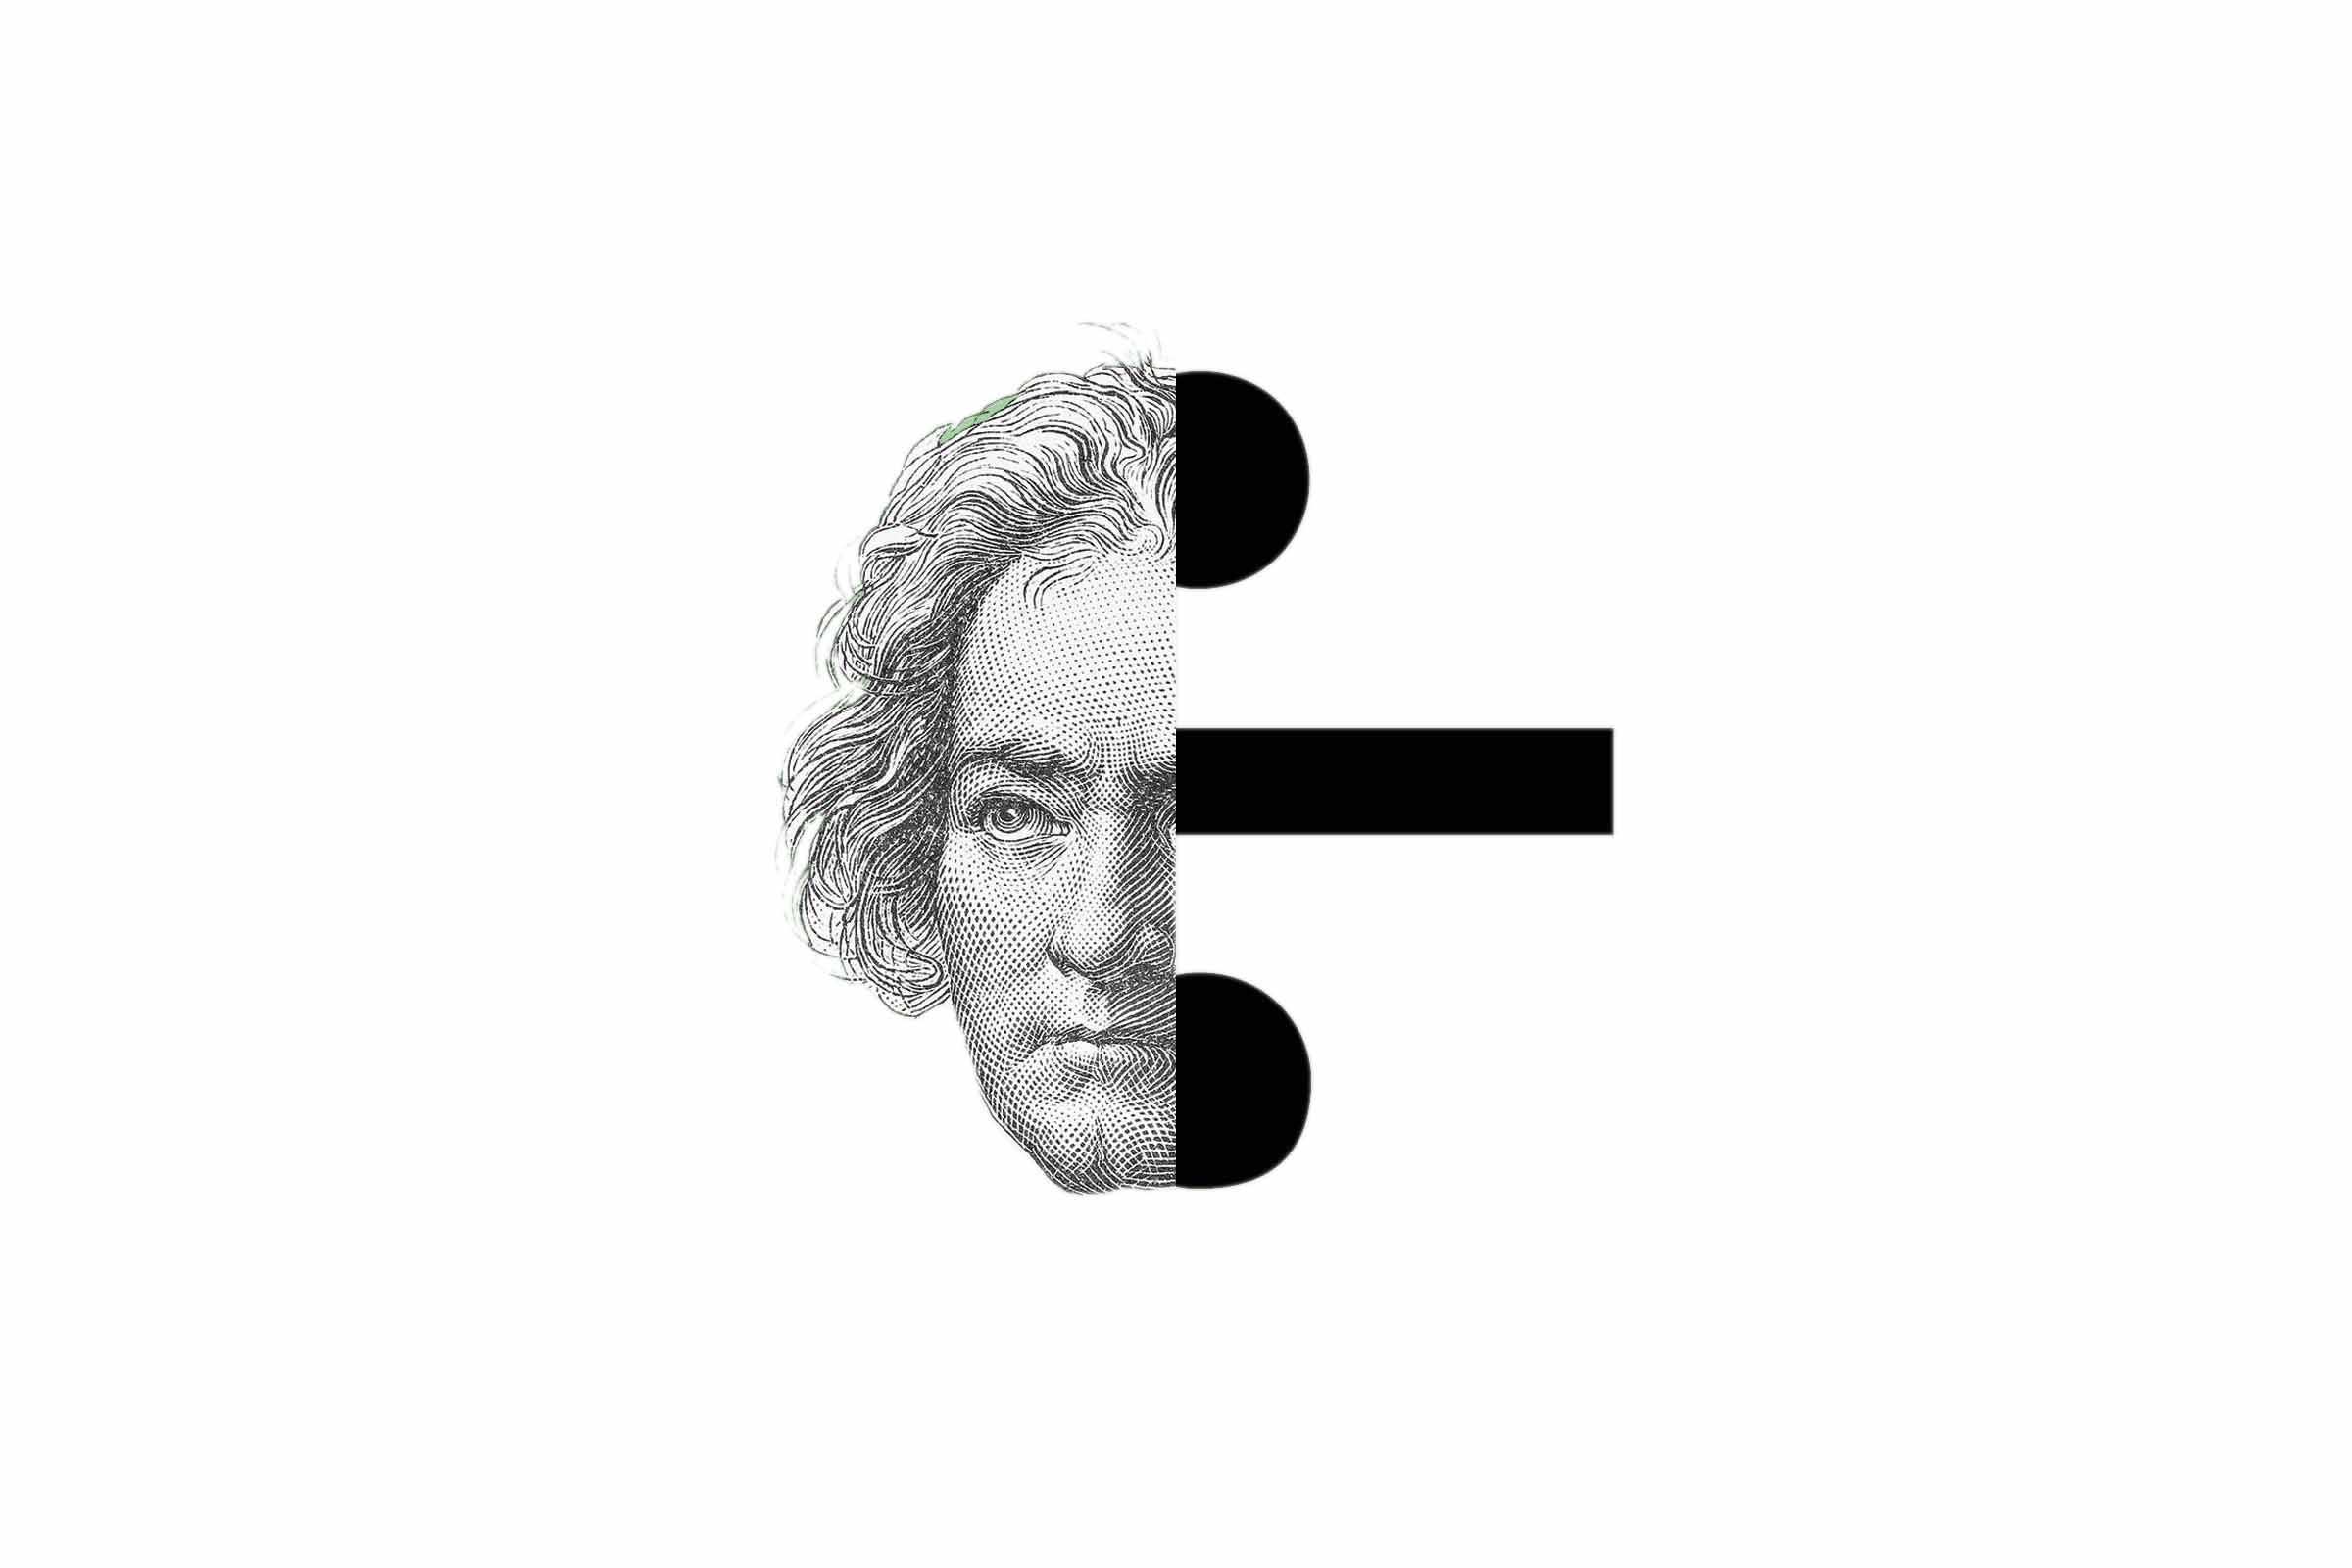 Beethoven never knew how to multiply or divide